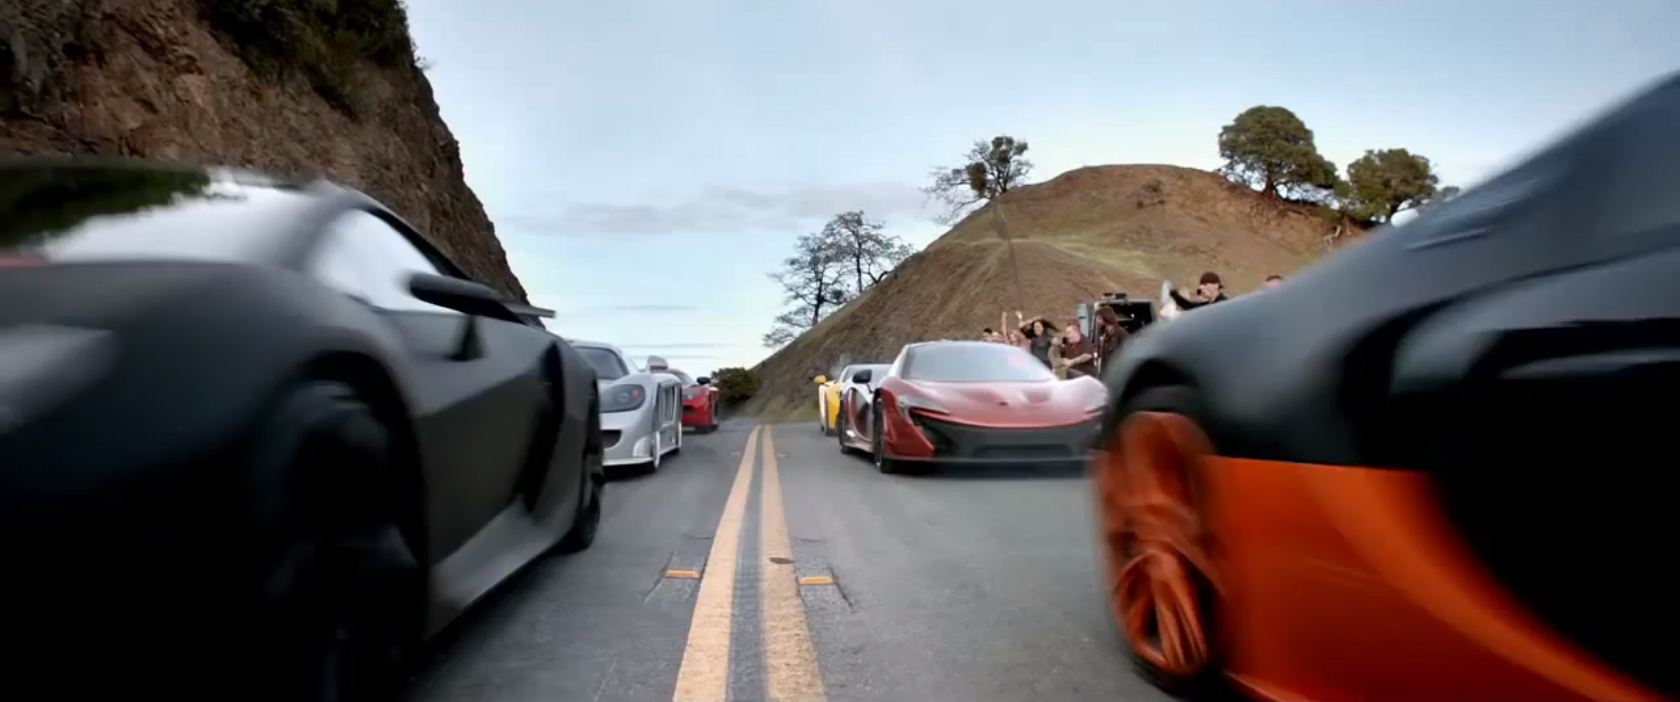 need for speed race - photo #6